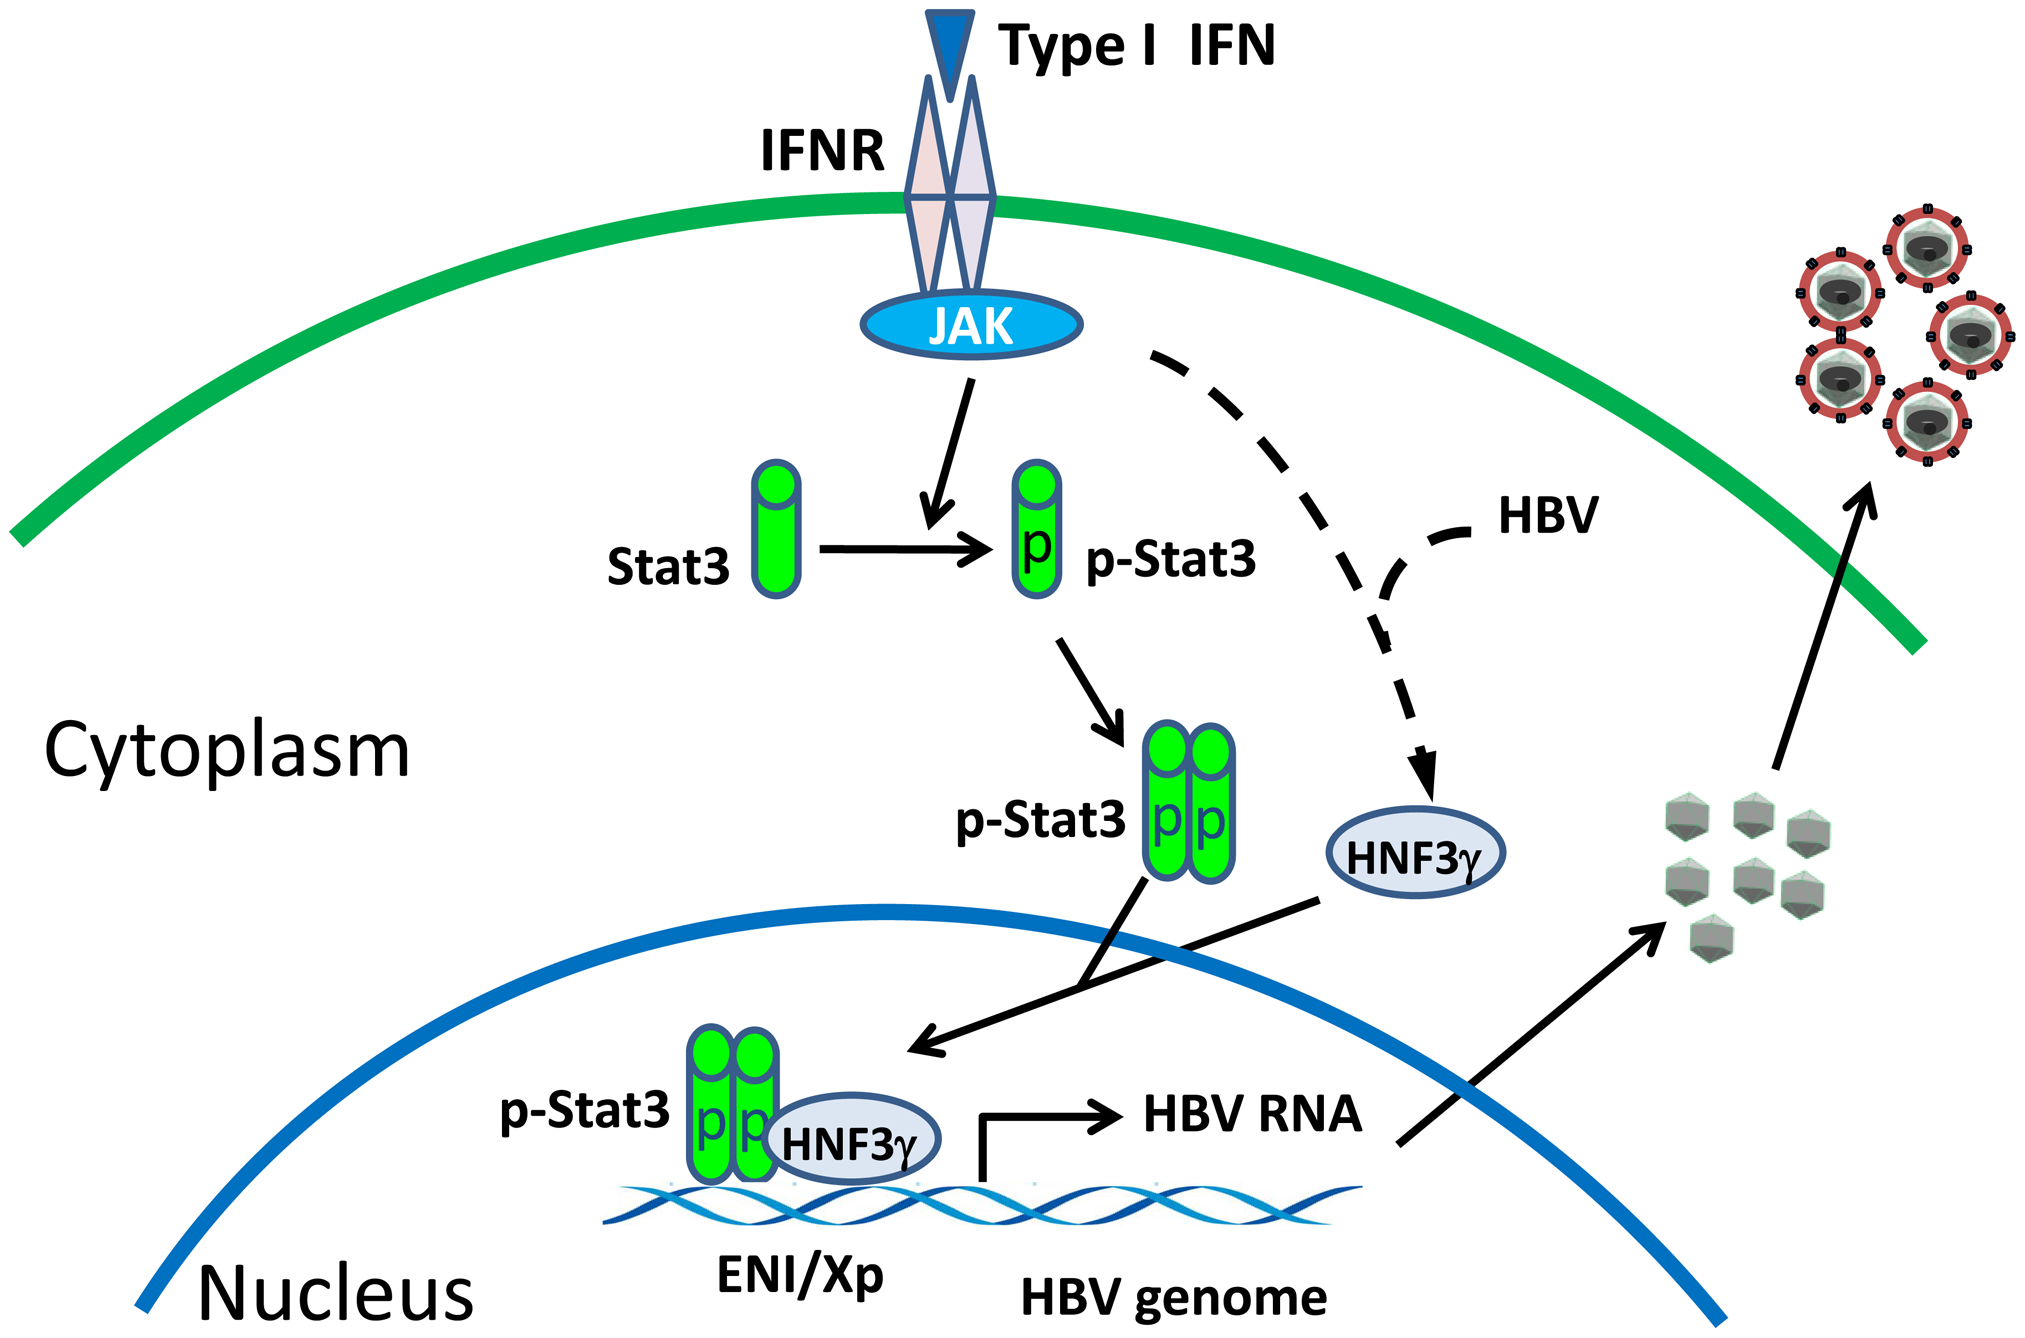 Mechanism of the activation of HBV replication by IFN- α/β when the HBV level is low.